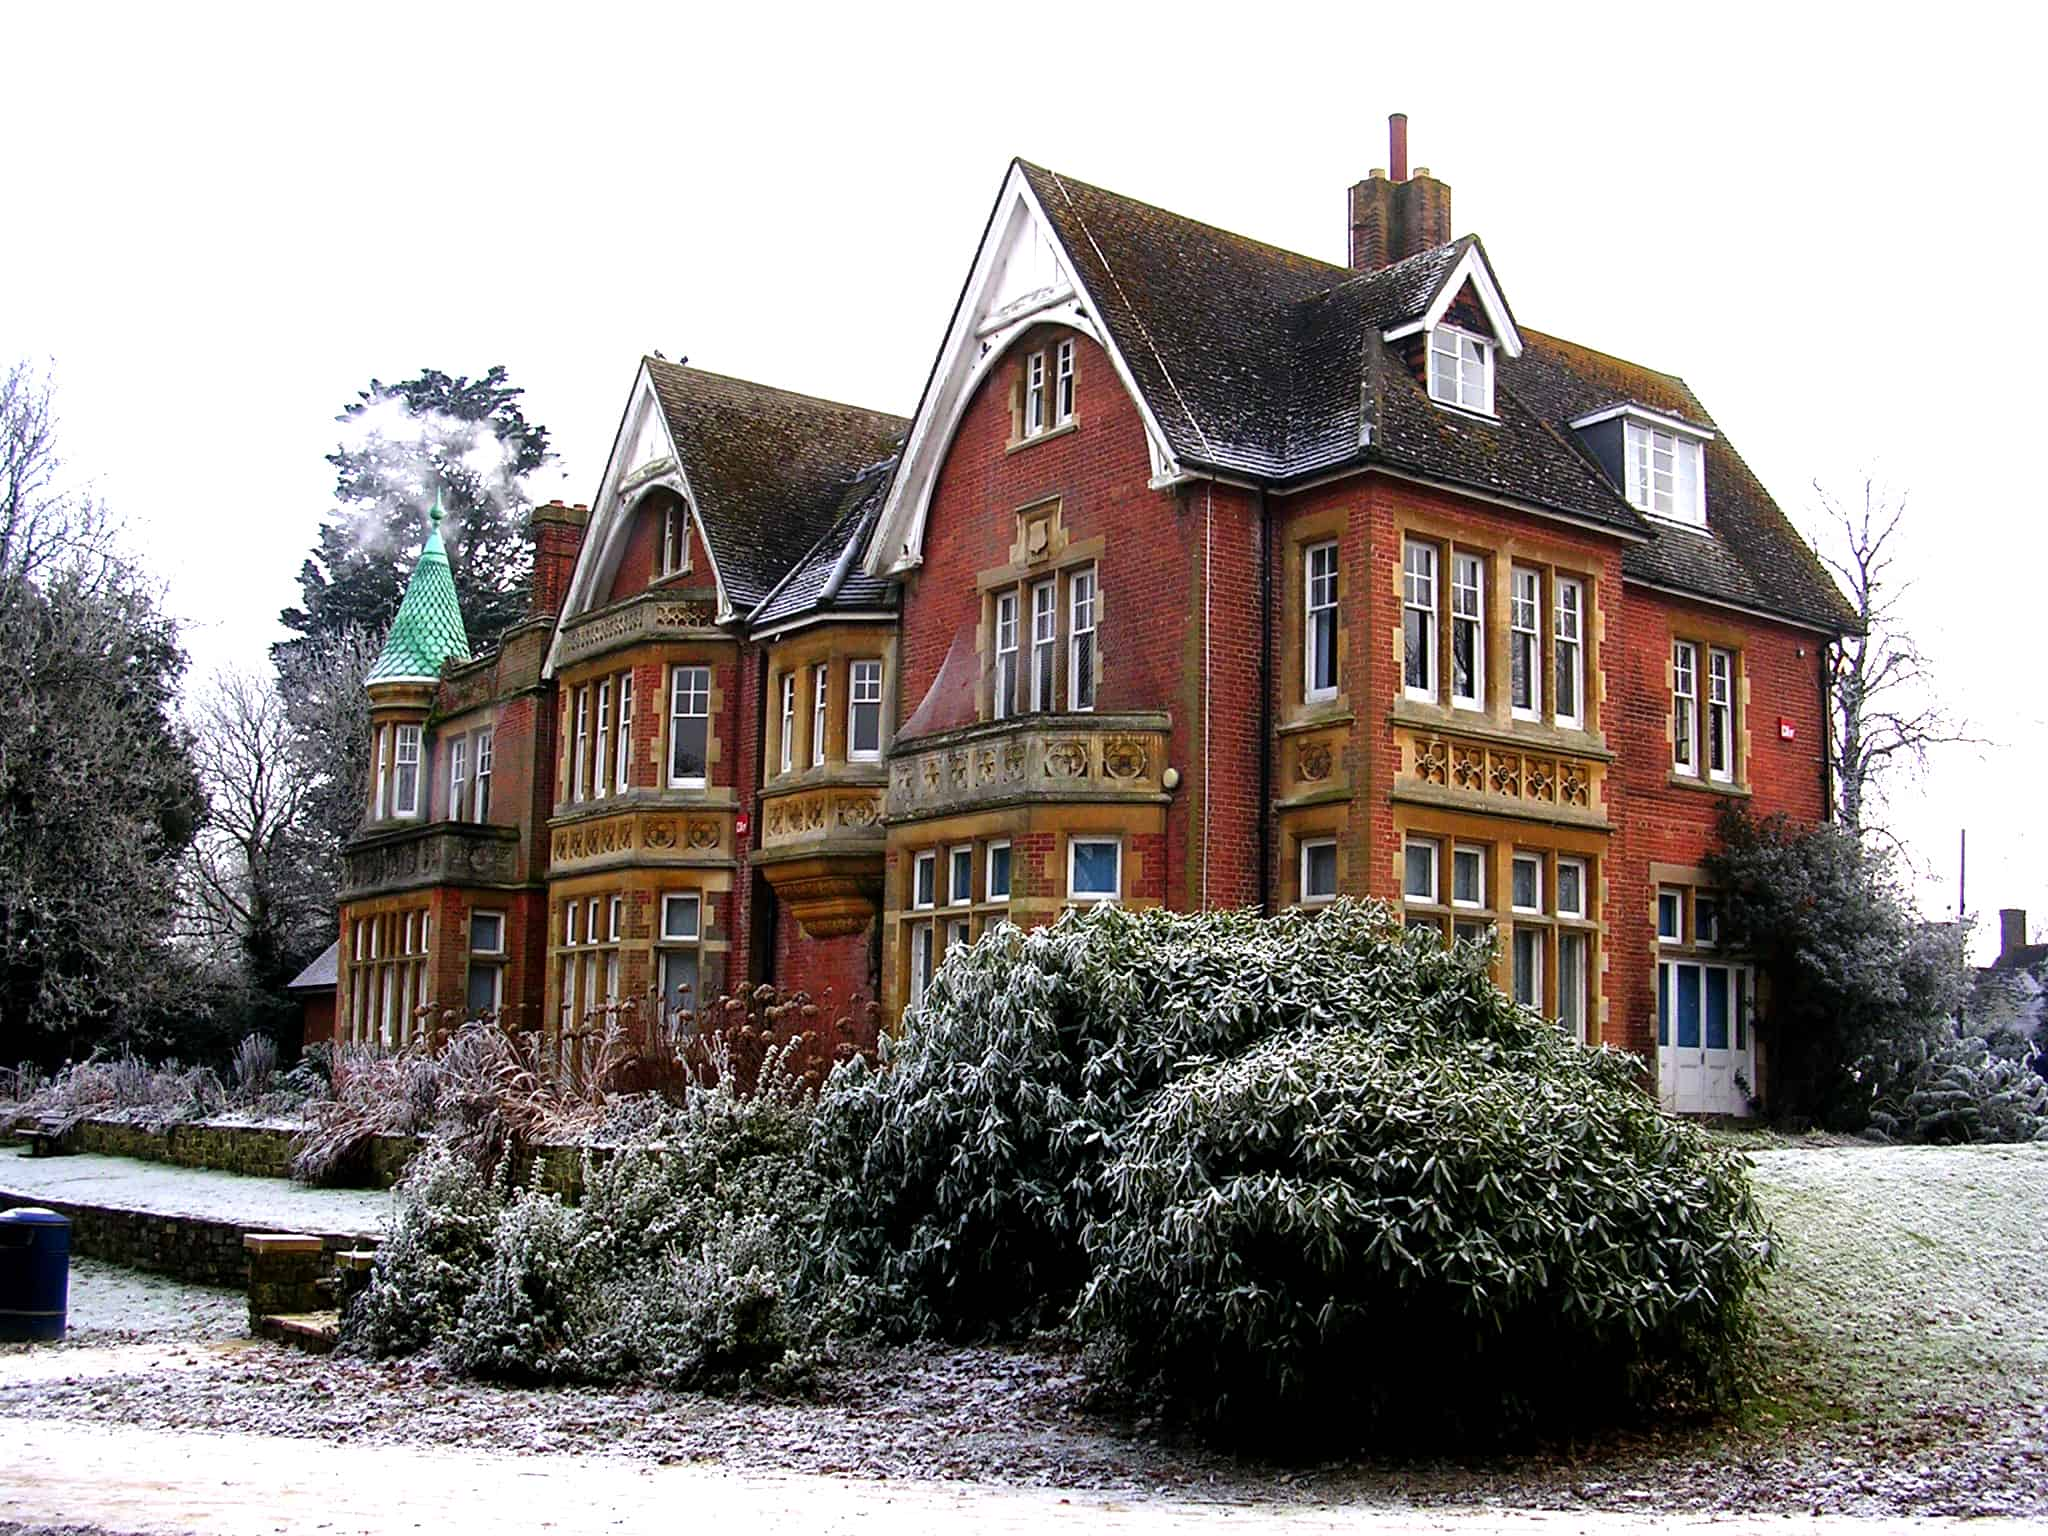 Goff's_Park_House,_Crawley,_Winter_Scene